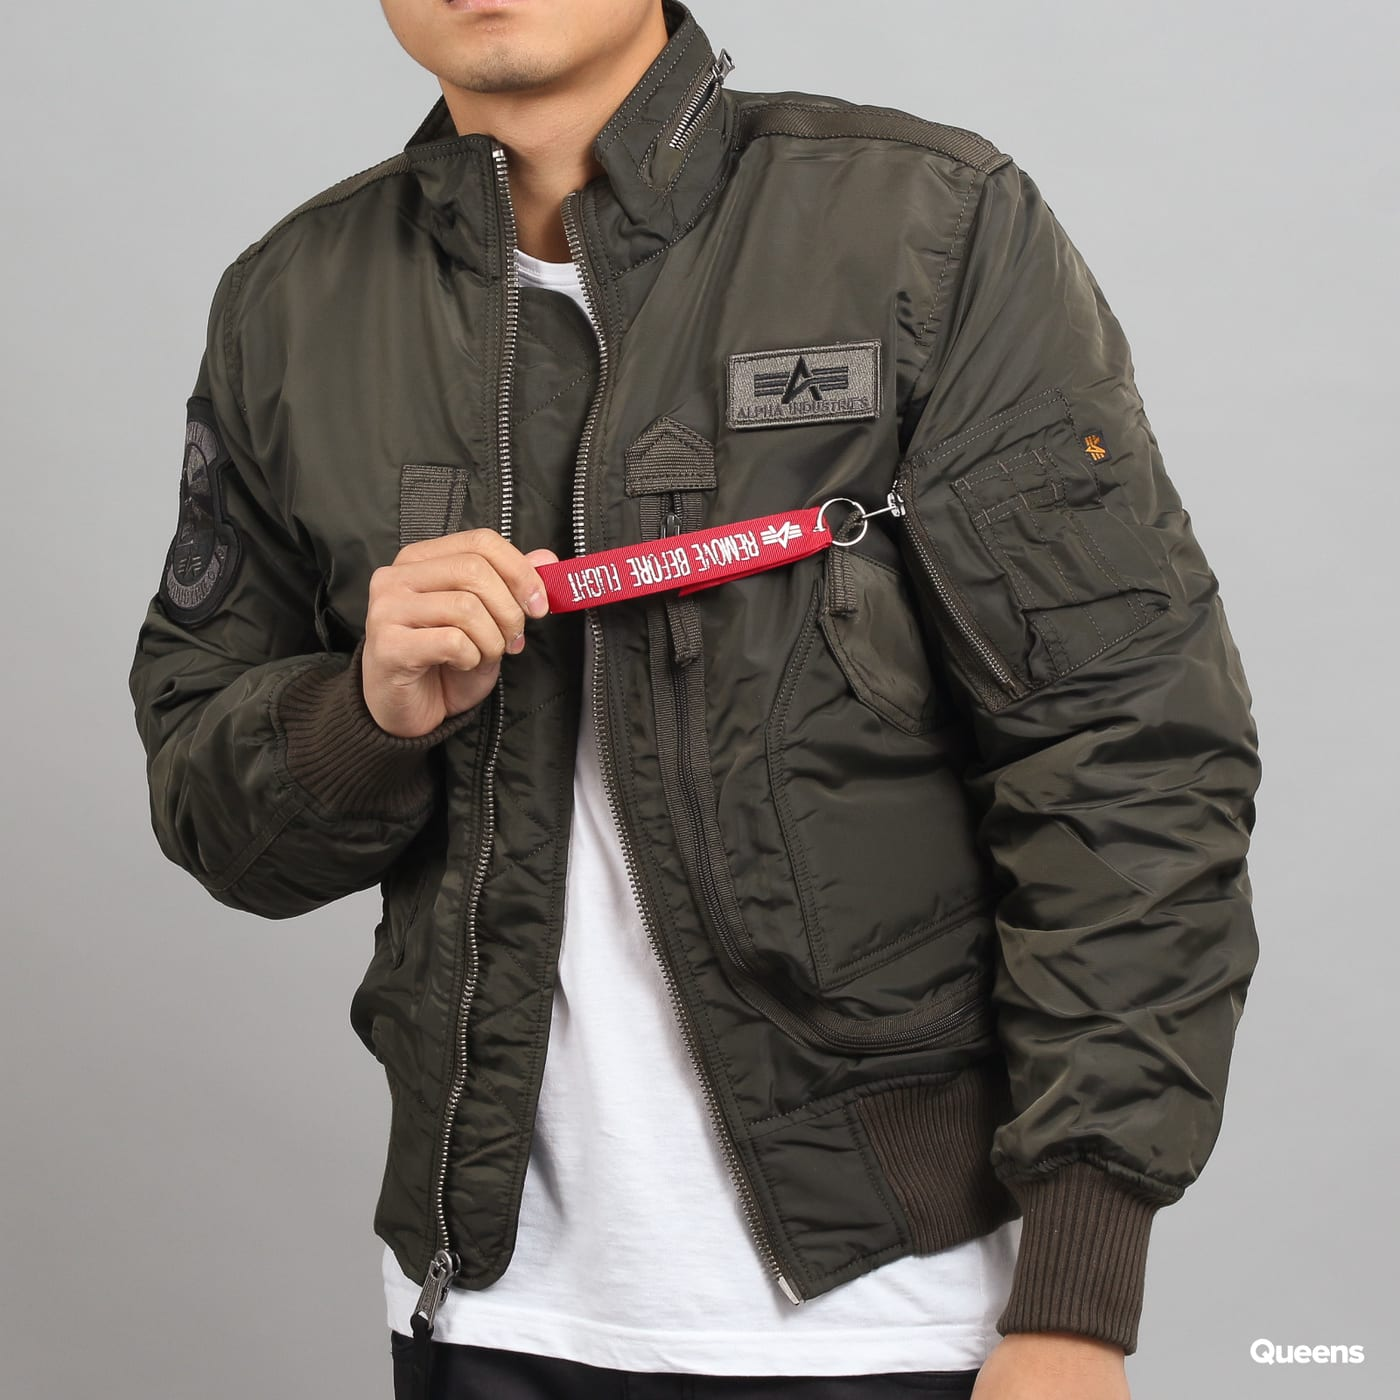 0f4eaf4e1 Zoom in Zoom in Zoom in Zoom in Zoom in Zoom in. Alpha Industries Engine  dark olive